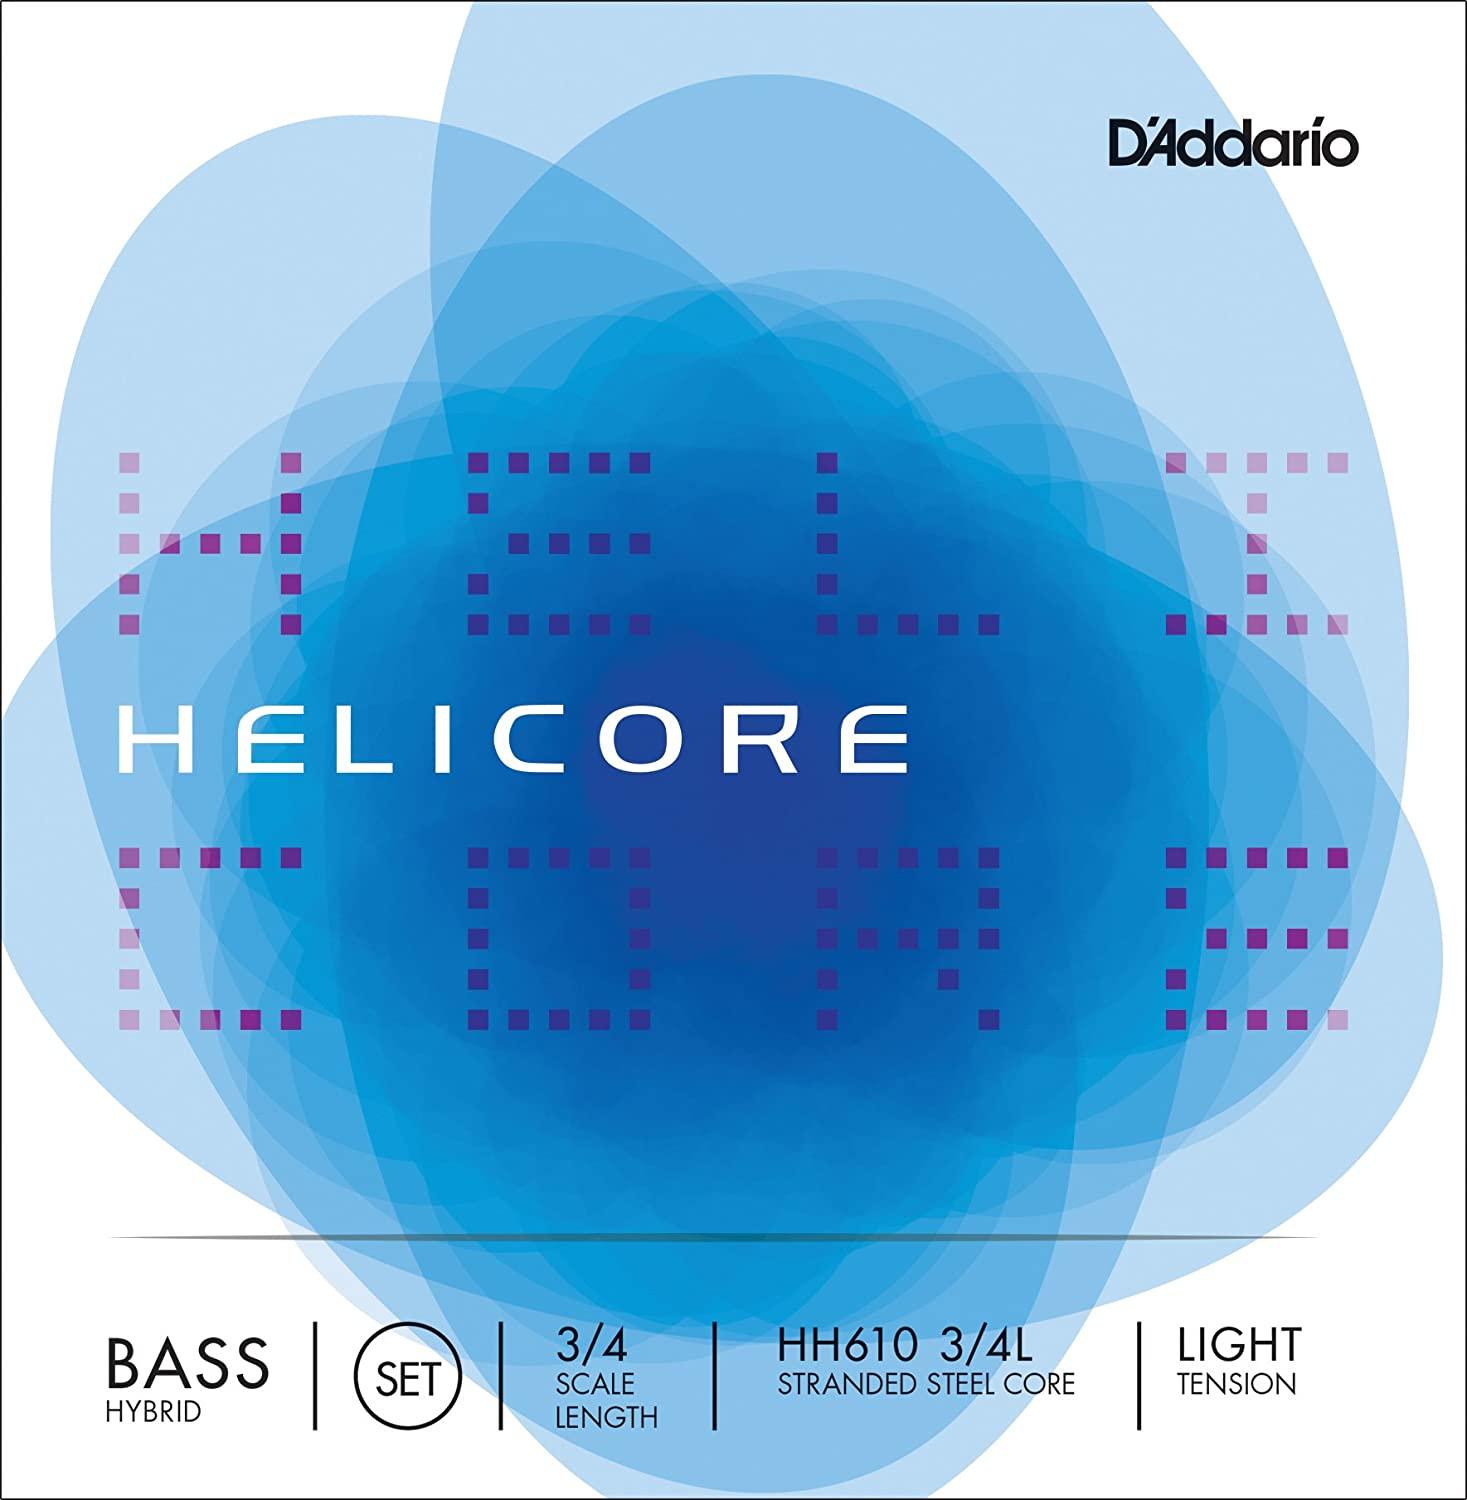 D'Addario Helicore Hybrid Bass String Set, 3/4 Scale, Heavy Tension D' Addario HH610 3/4H